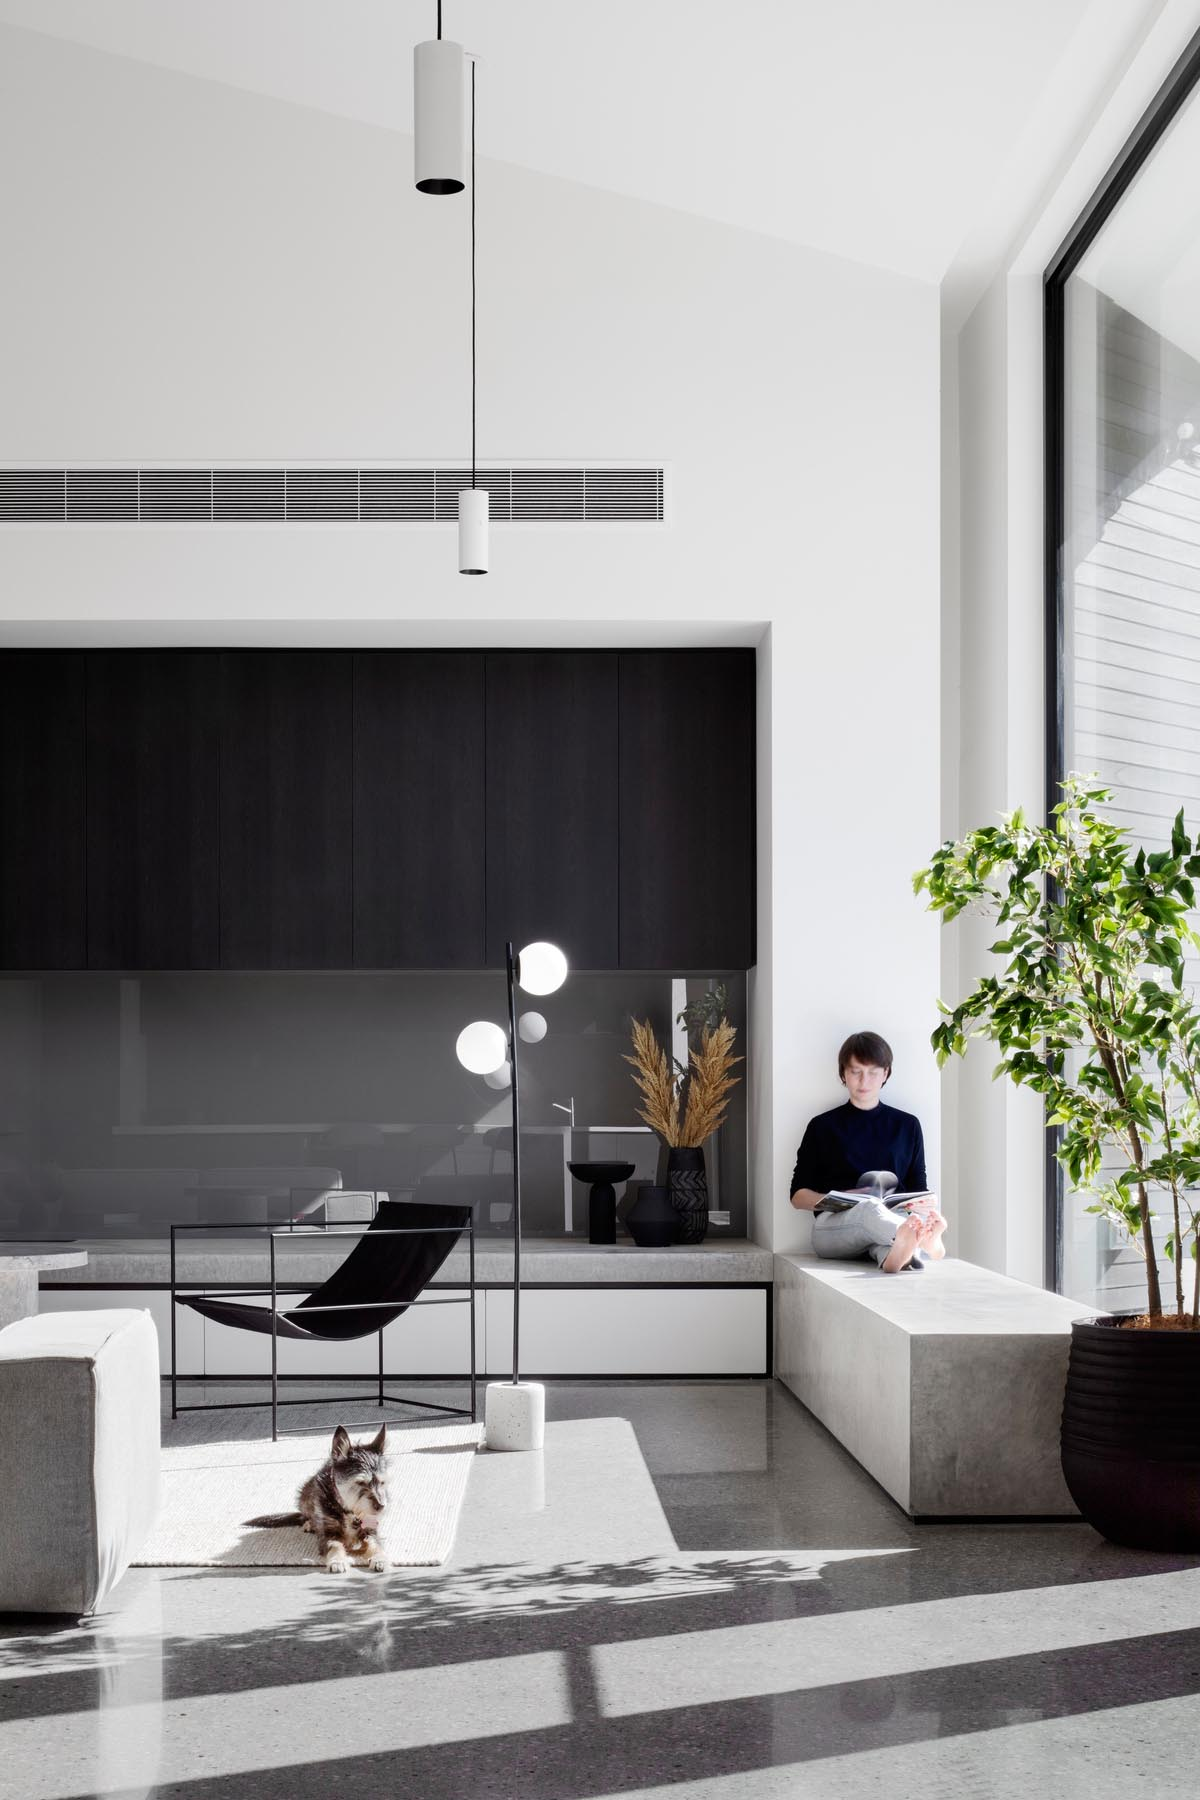 This modern living room has a minimalist fireplace and a concrete window bench by a large window.